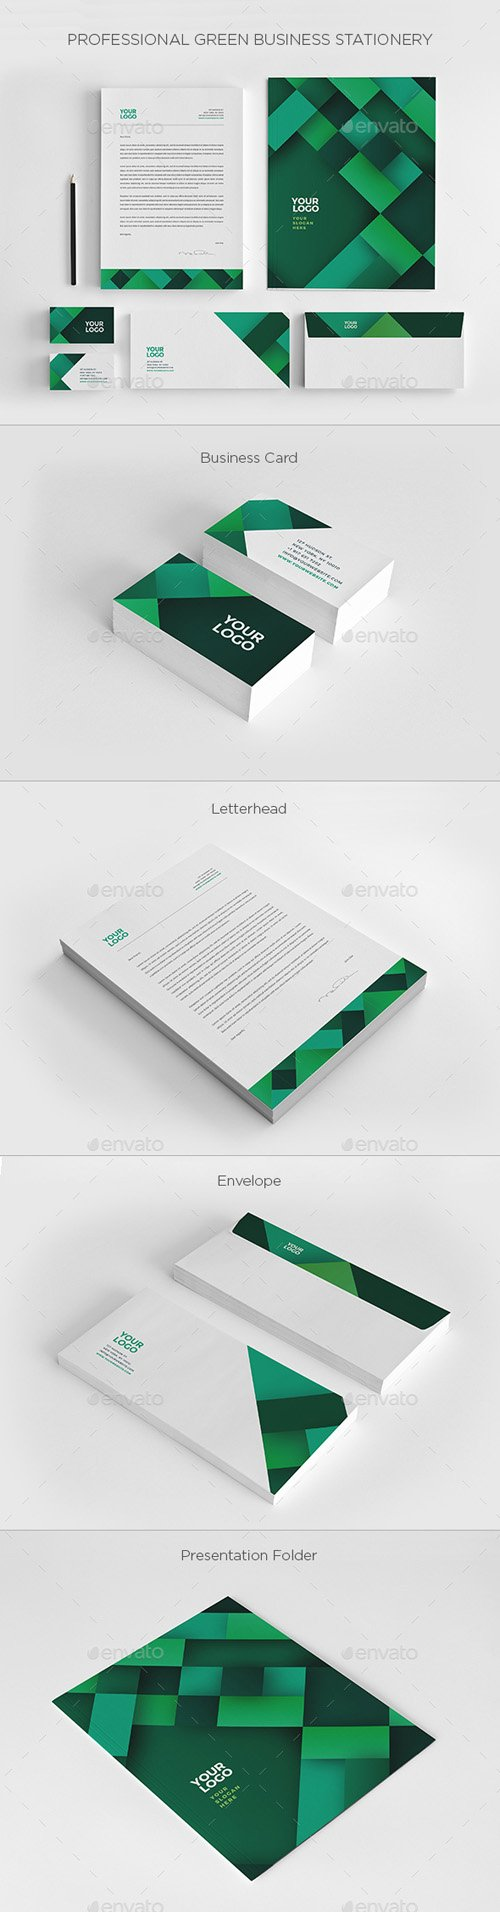 Professional Green Business Stationery 19751586